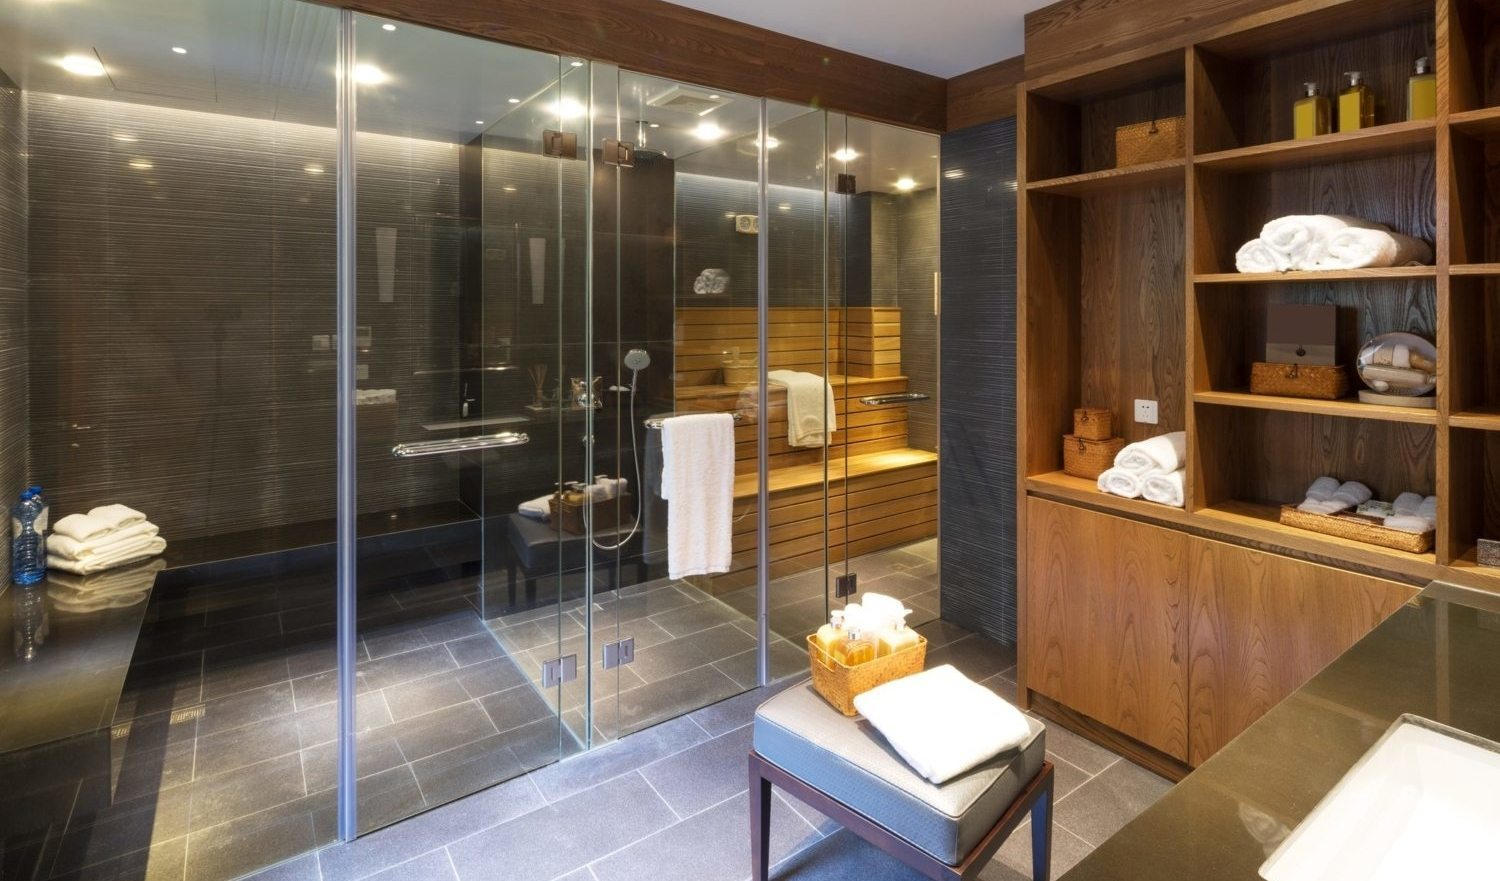 decoration and furniture in modern sauna room